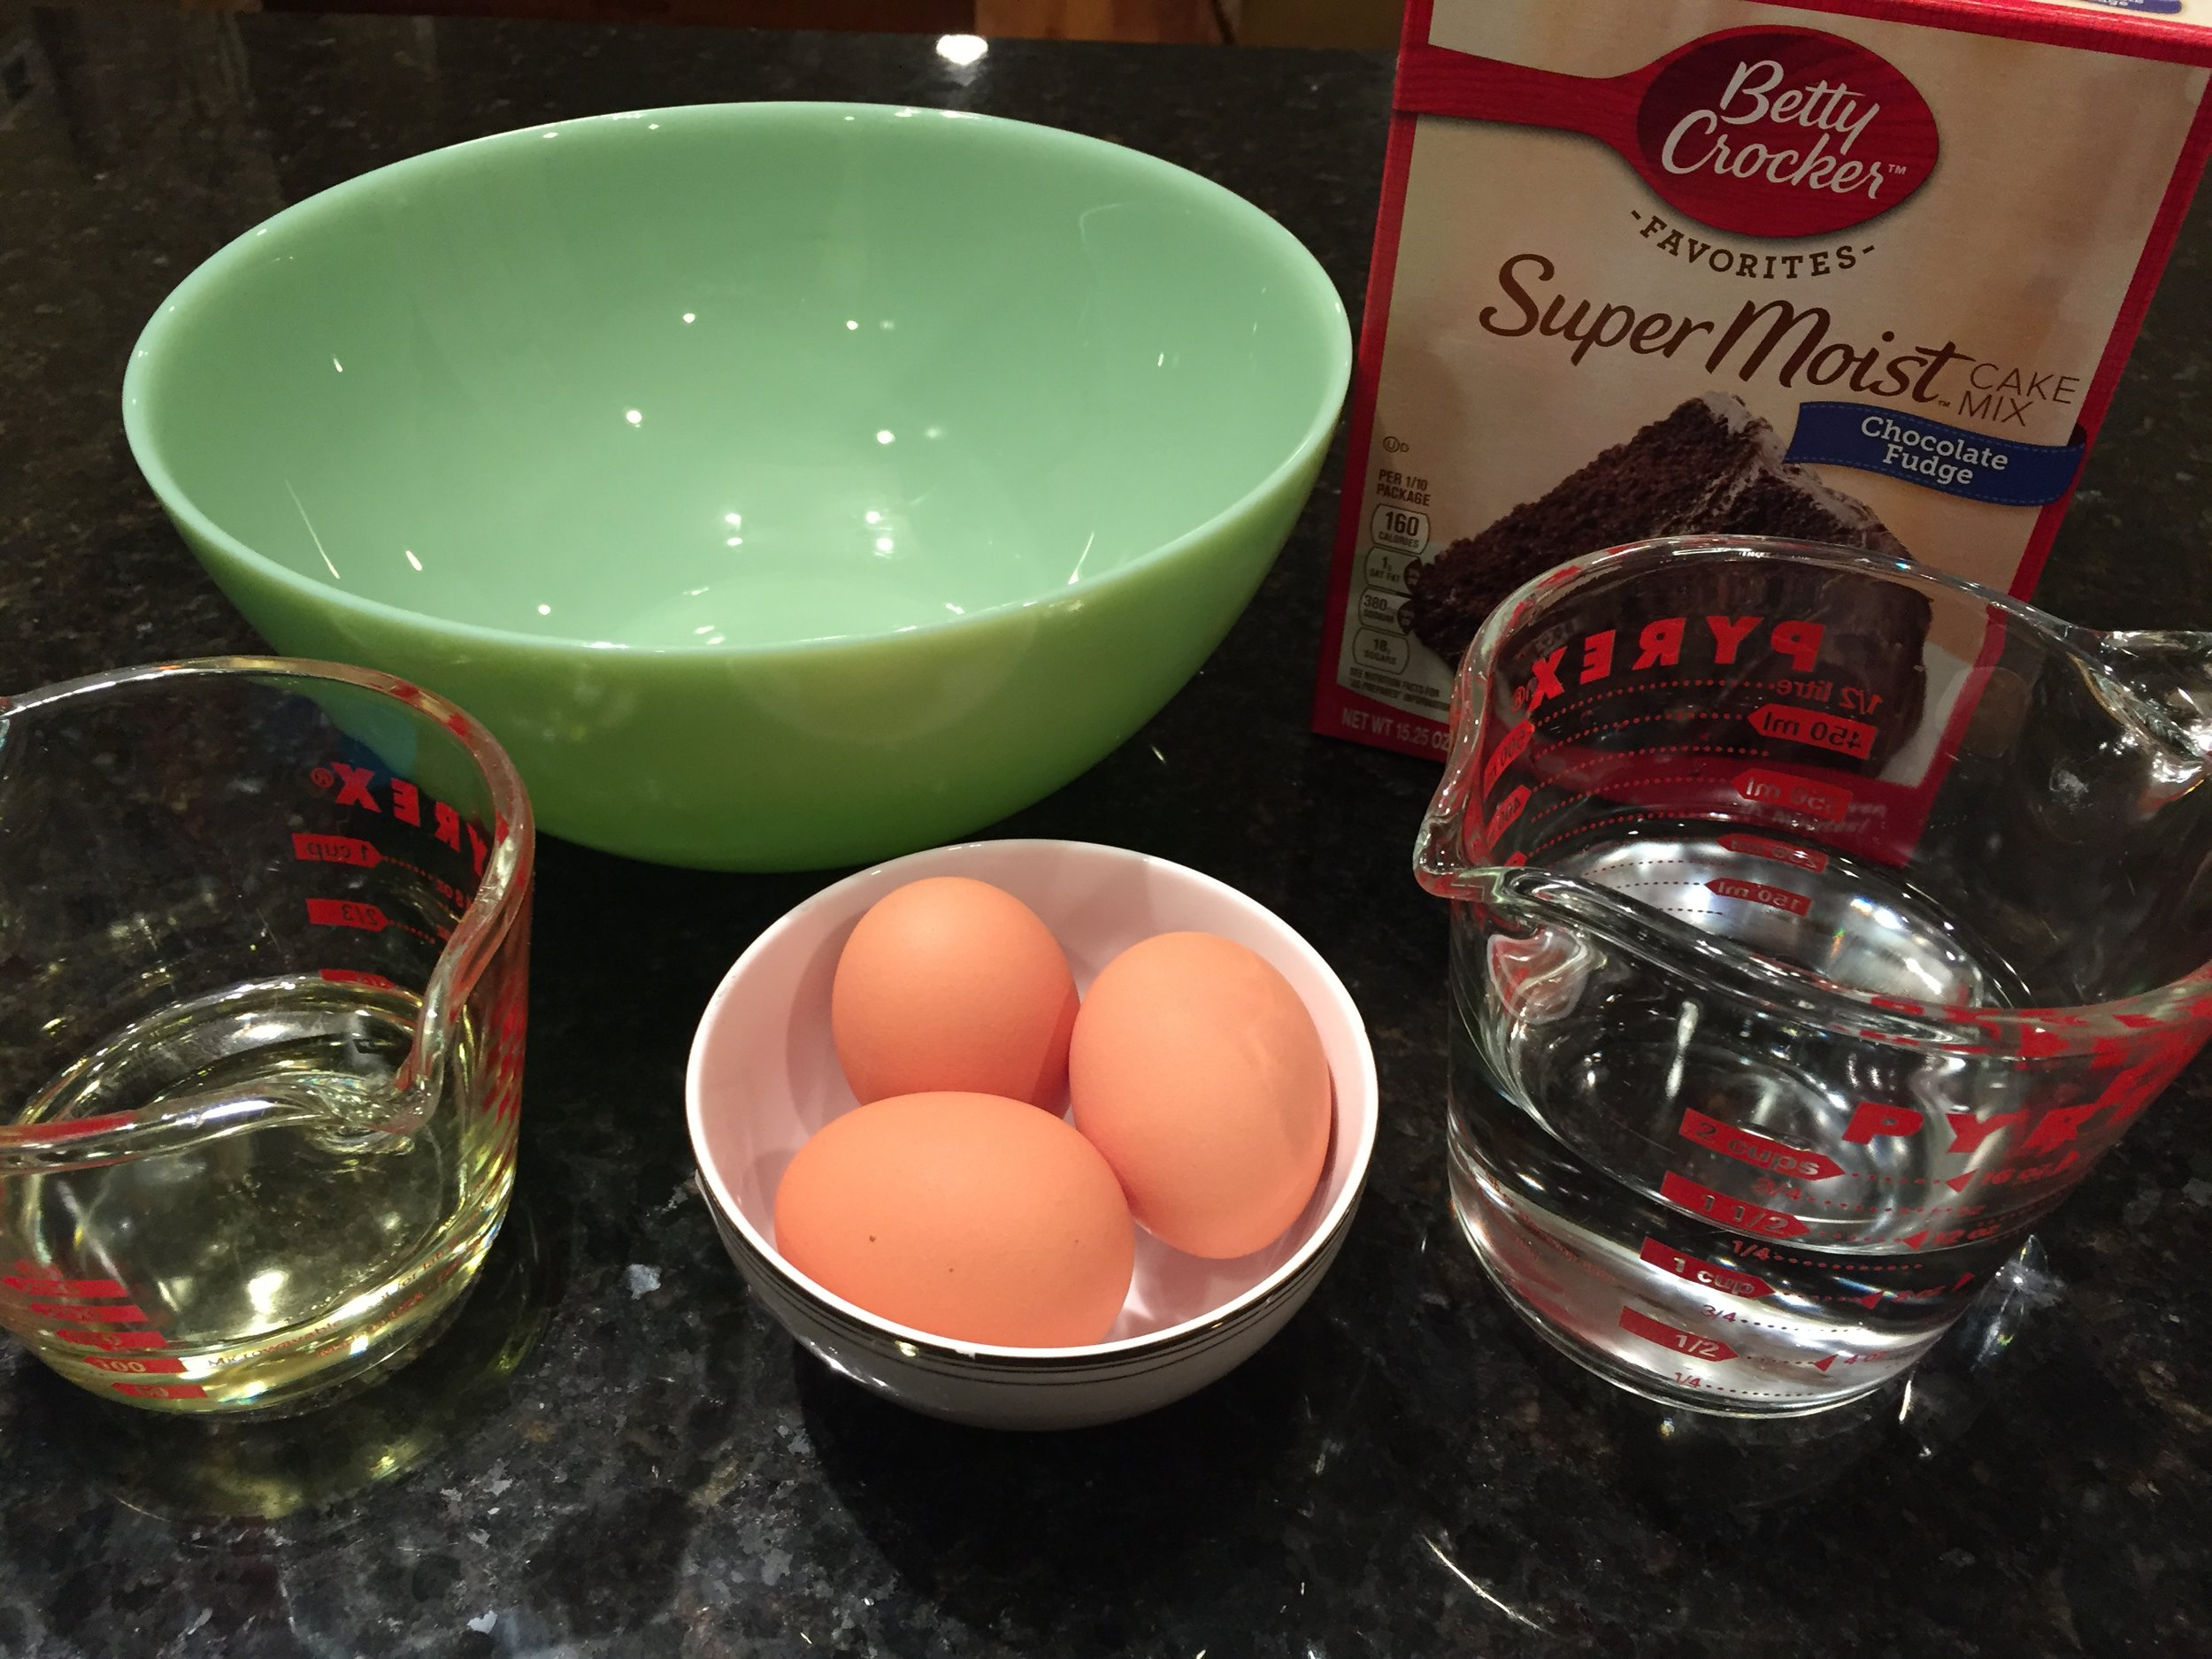 3 eggs, vegetable oil, water & cake mix